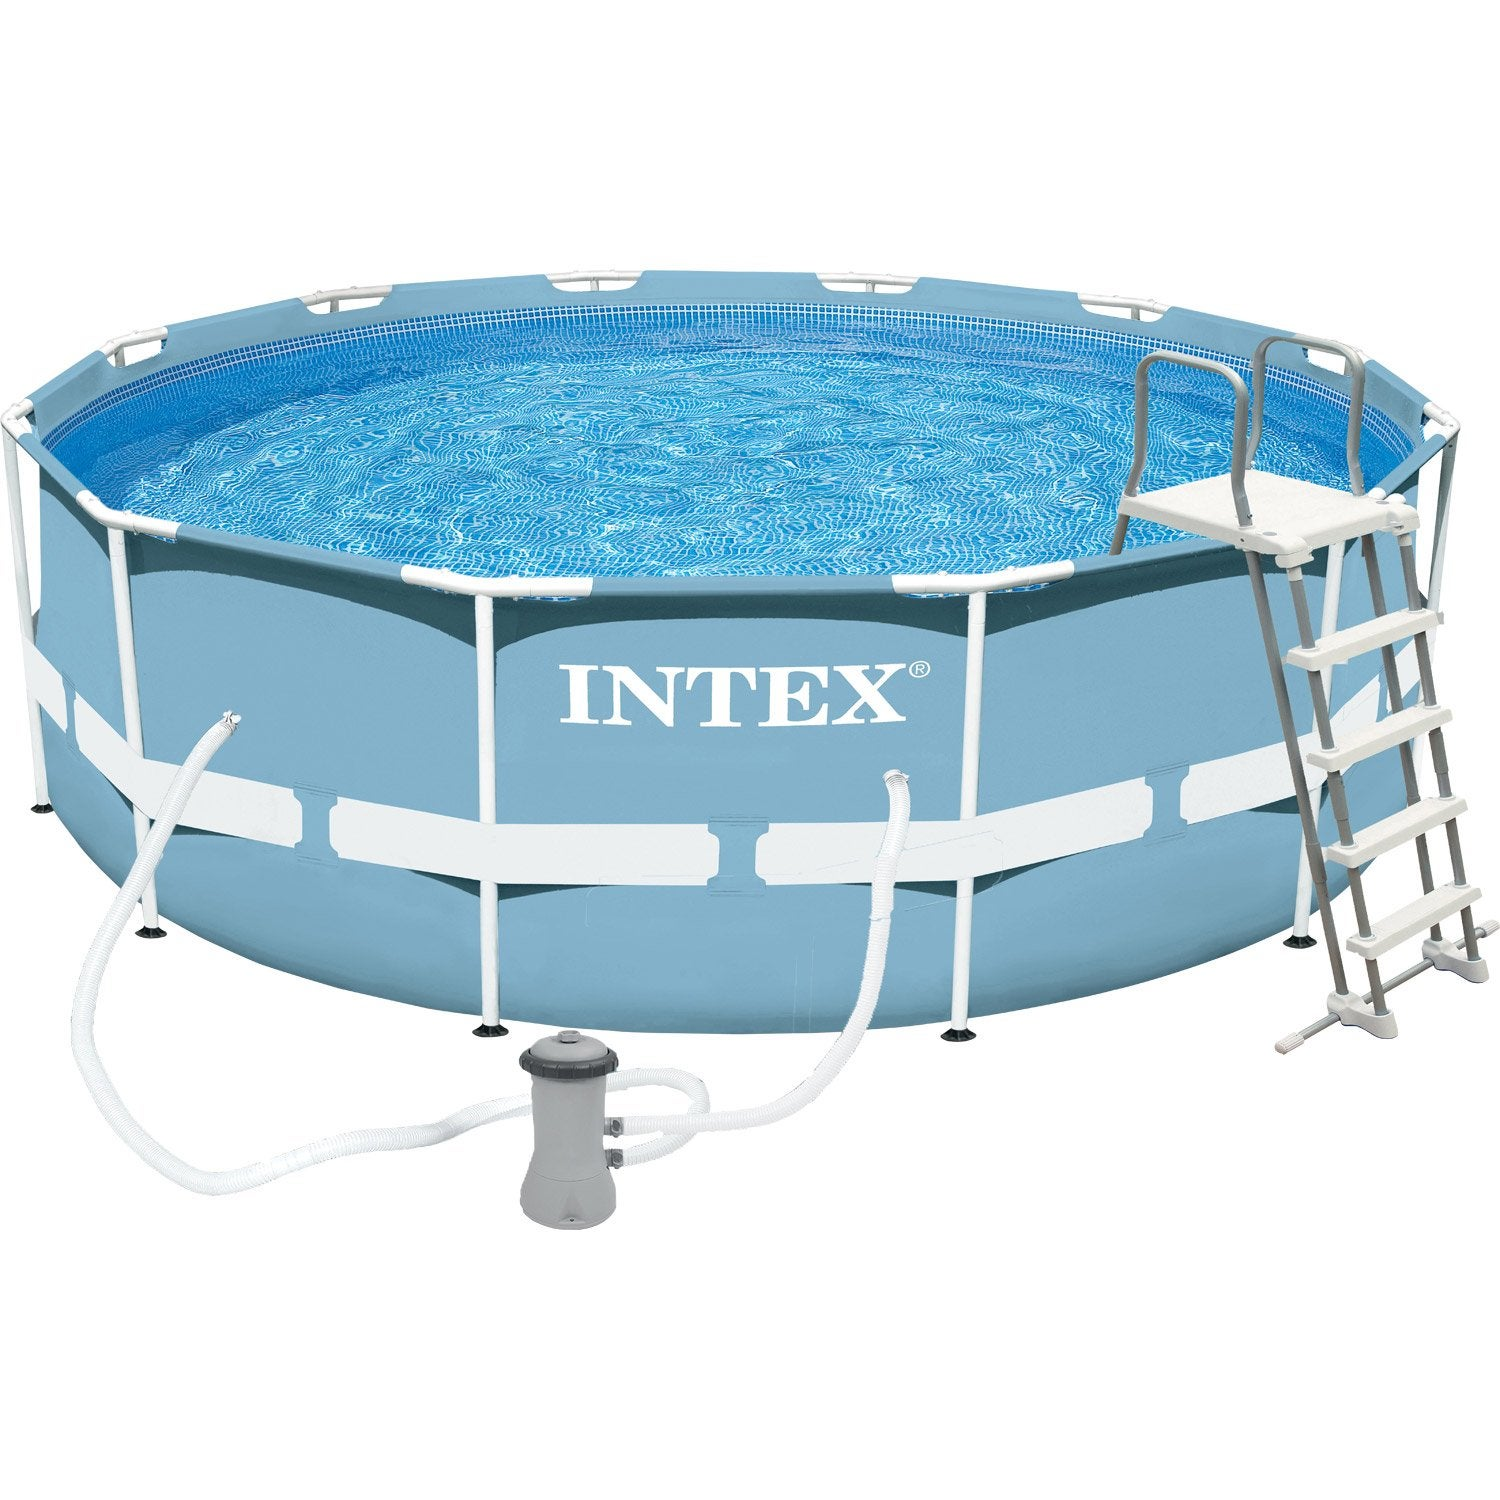 Piscine hors sol autoportante tubulaire prism frame intex for Piscine auchan hors sol